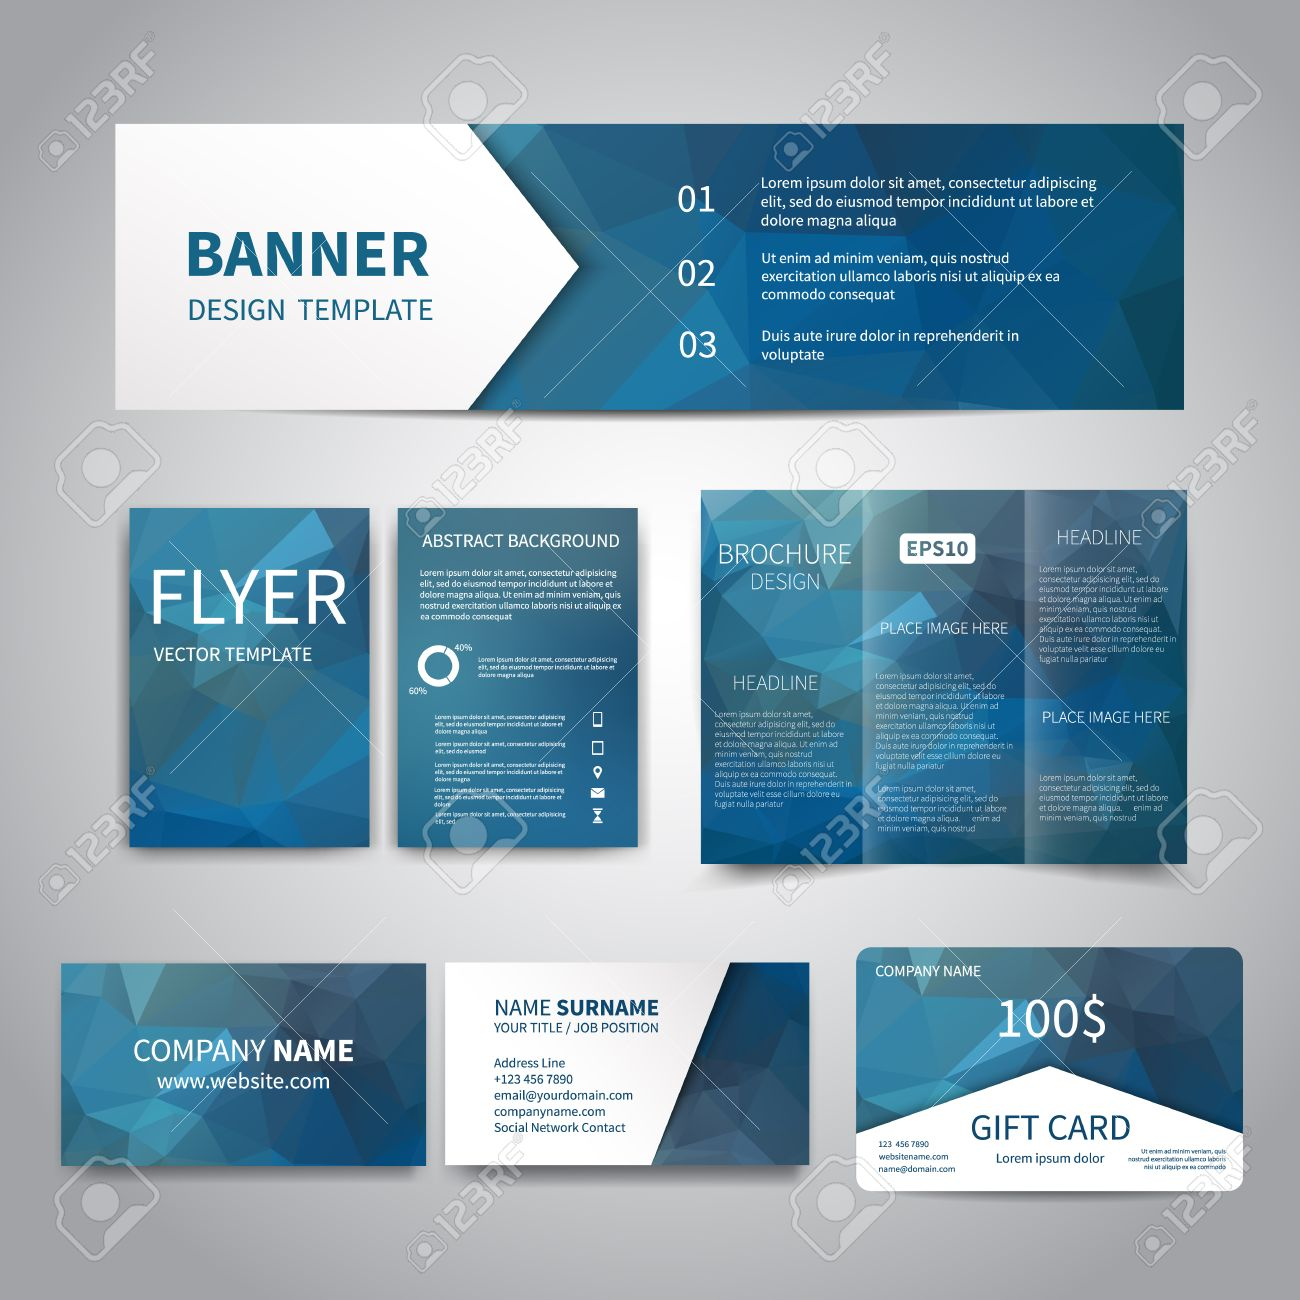 Banner flyers brochure business cards gift card design banner flyers brochure business cards gift card design templates set with geometric magicingreecefo Image collections